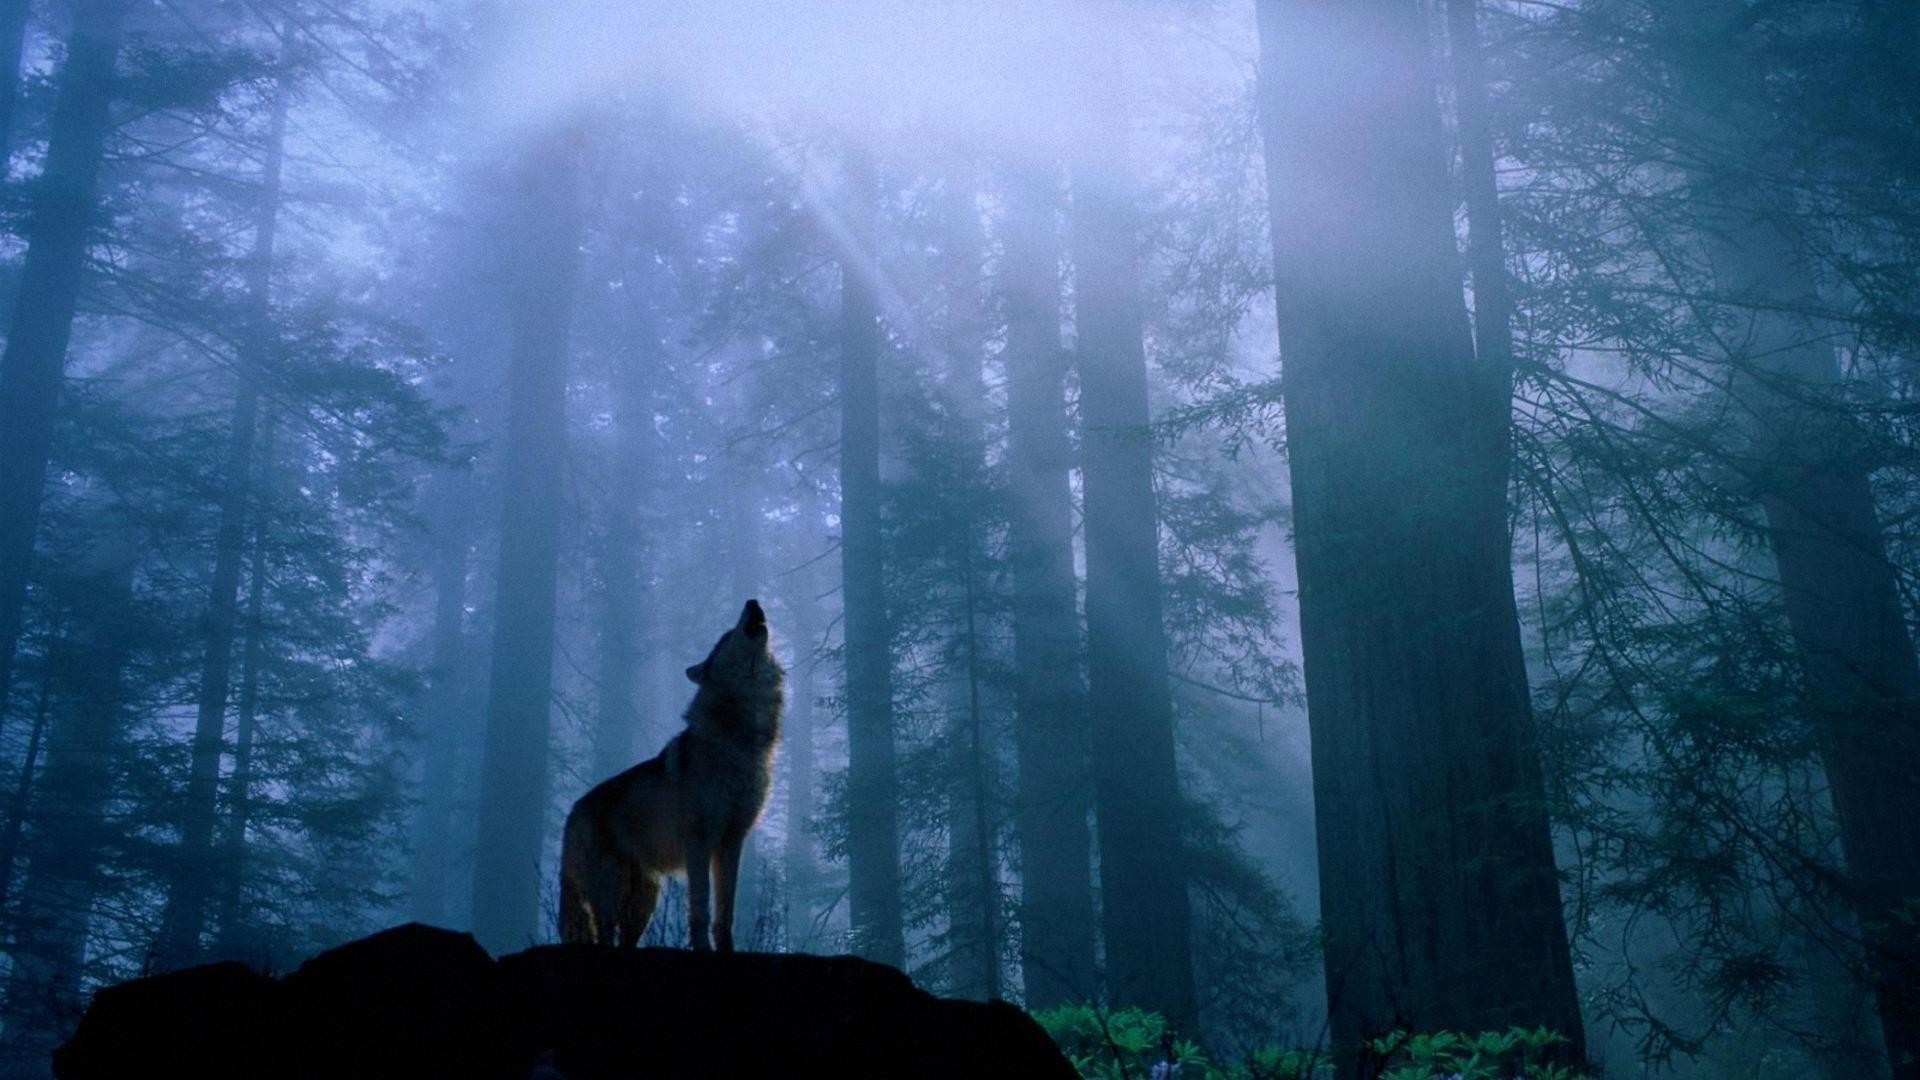 1920x1080 86 best images about <b>Indian wolf</b> poems on Pinterest